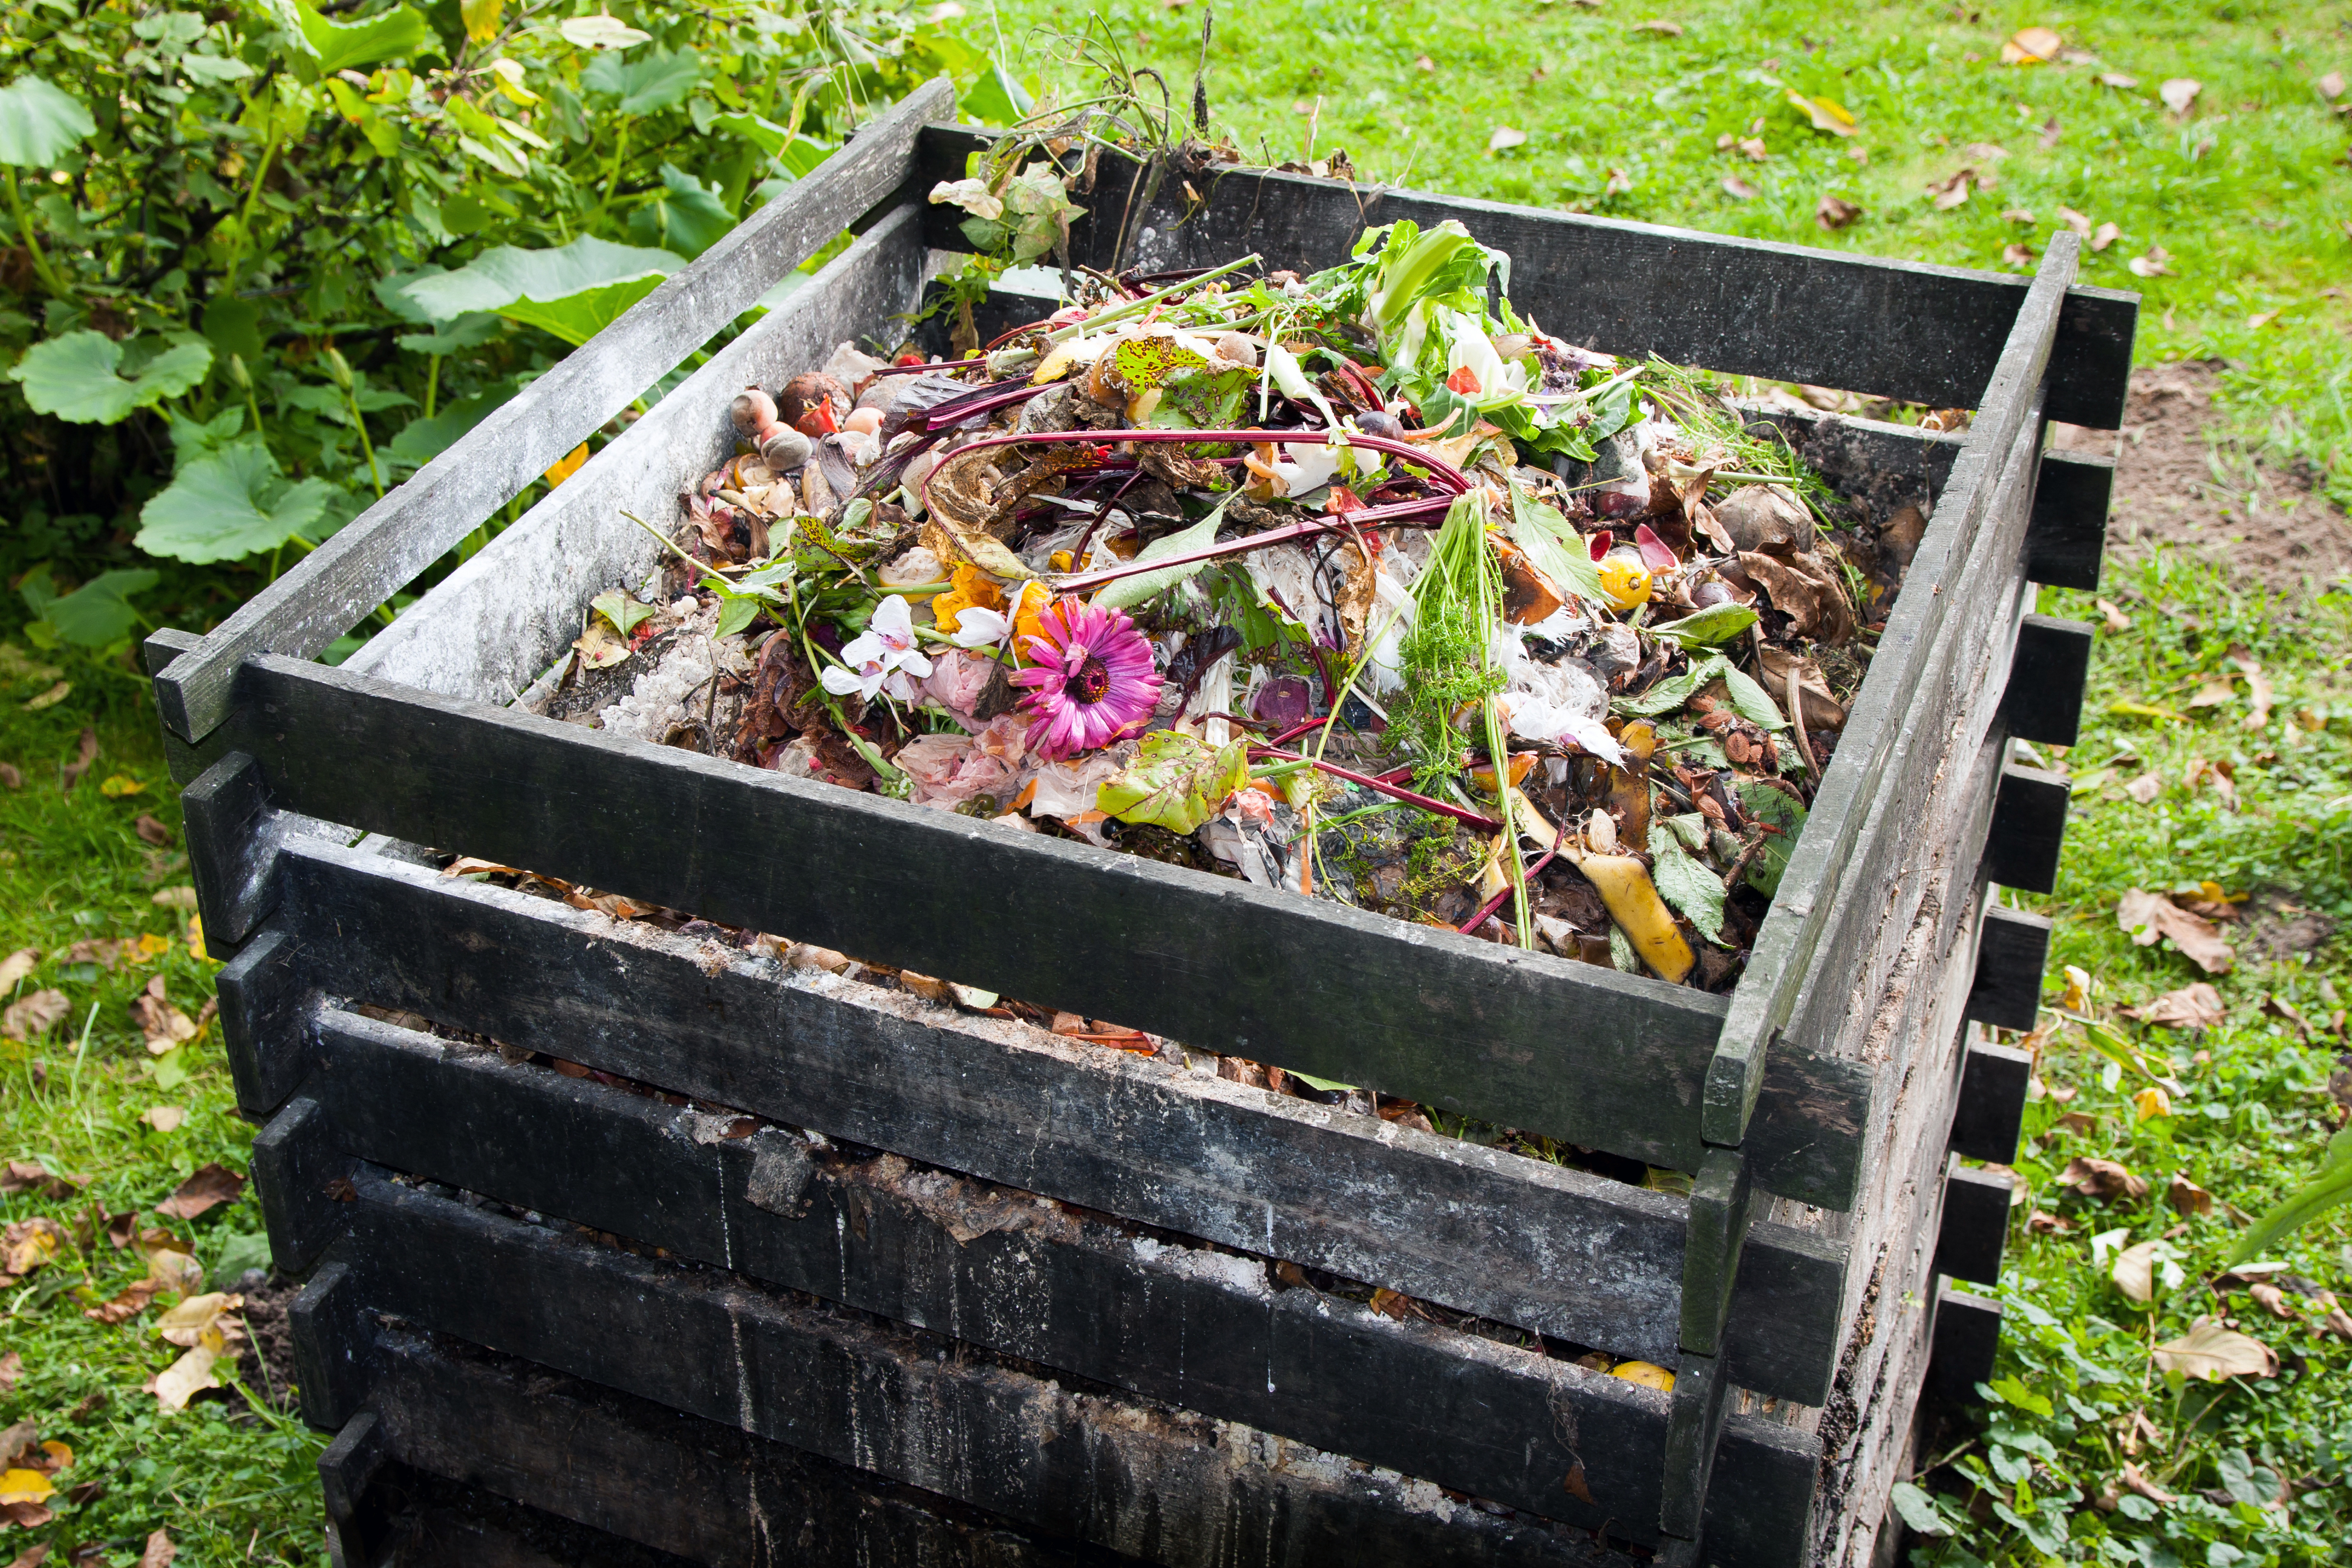 A wood bin nearly full with dirt and food scraps.